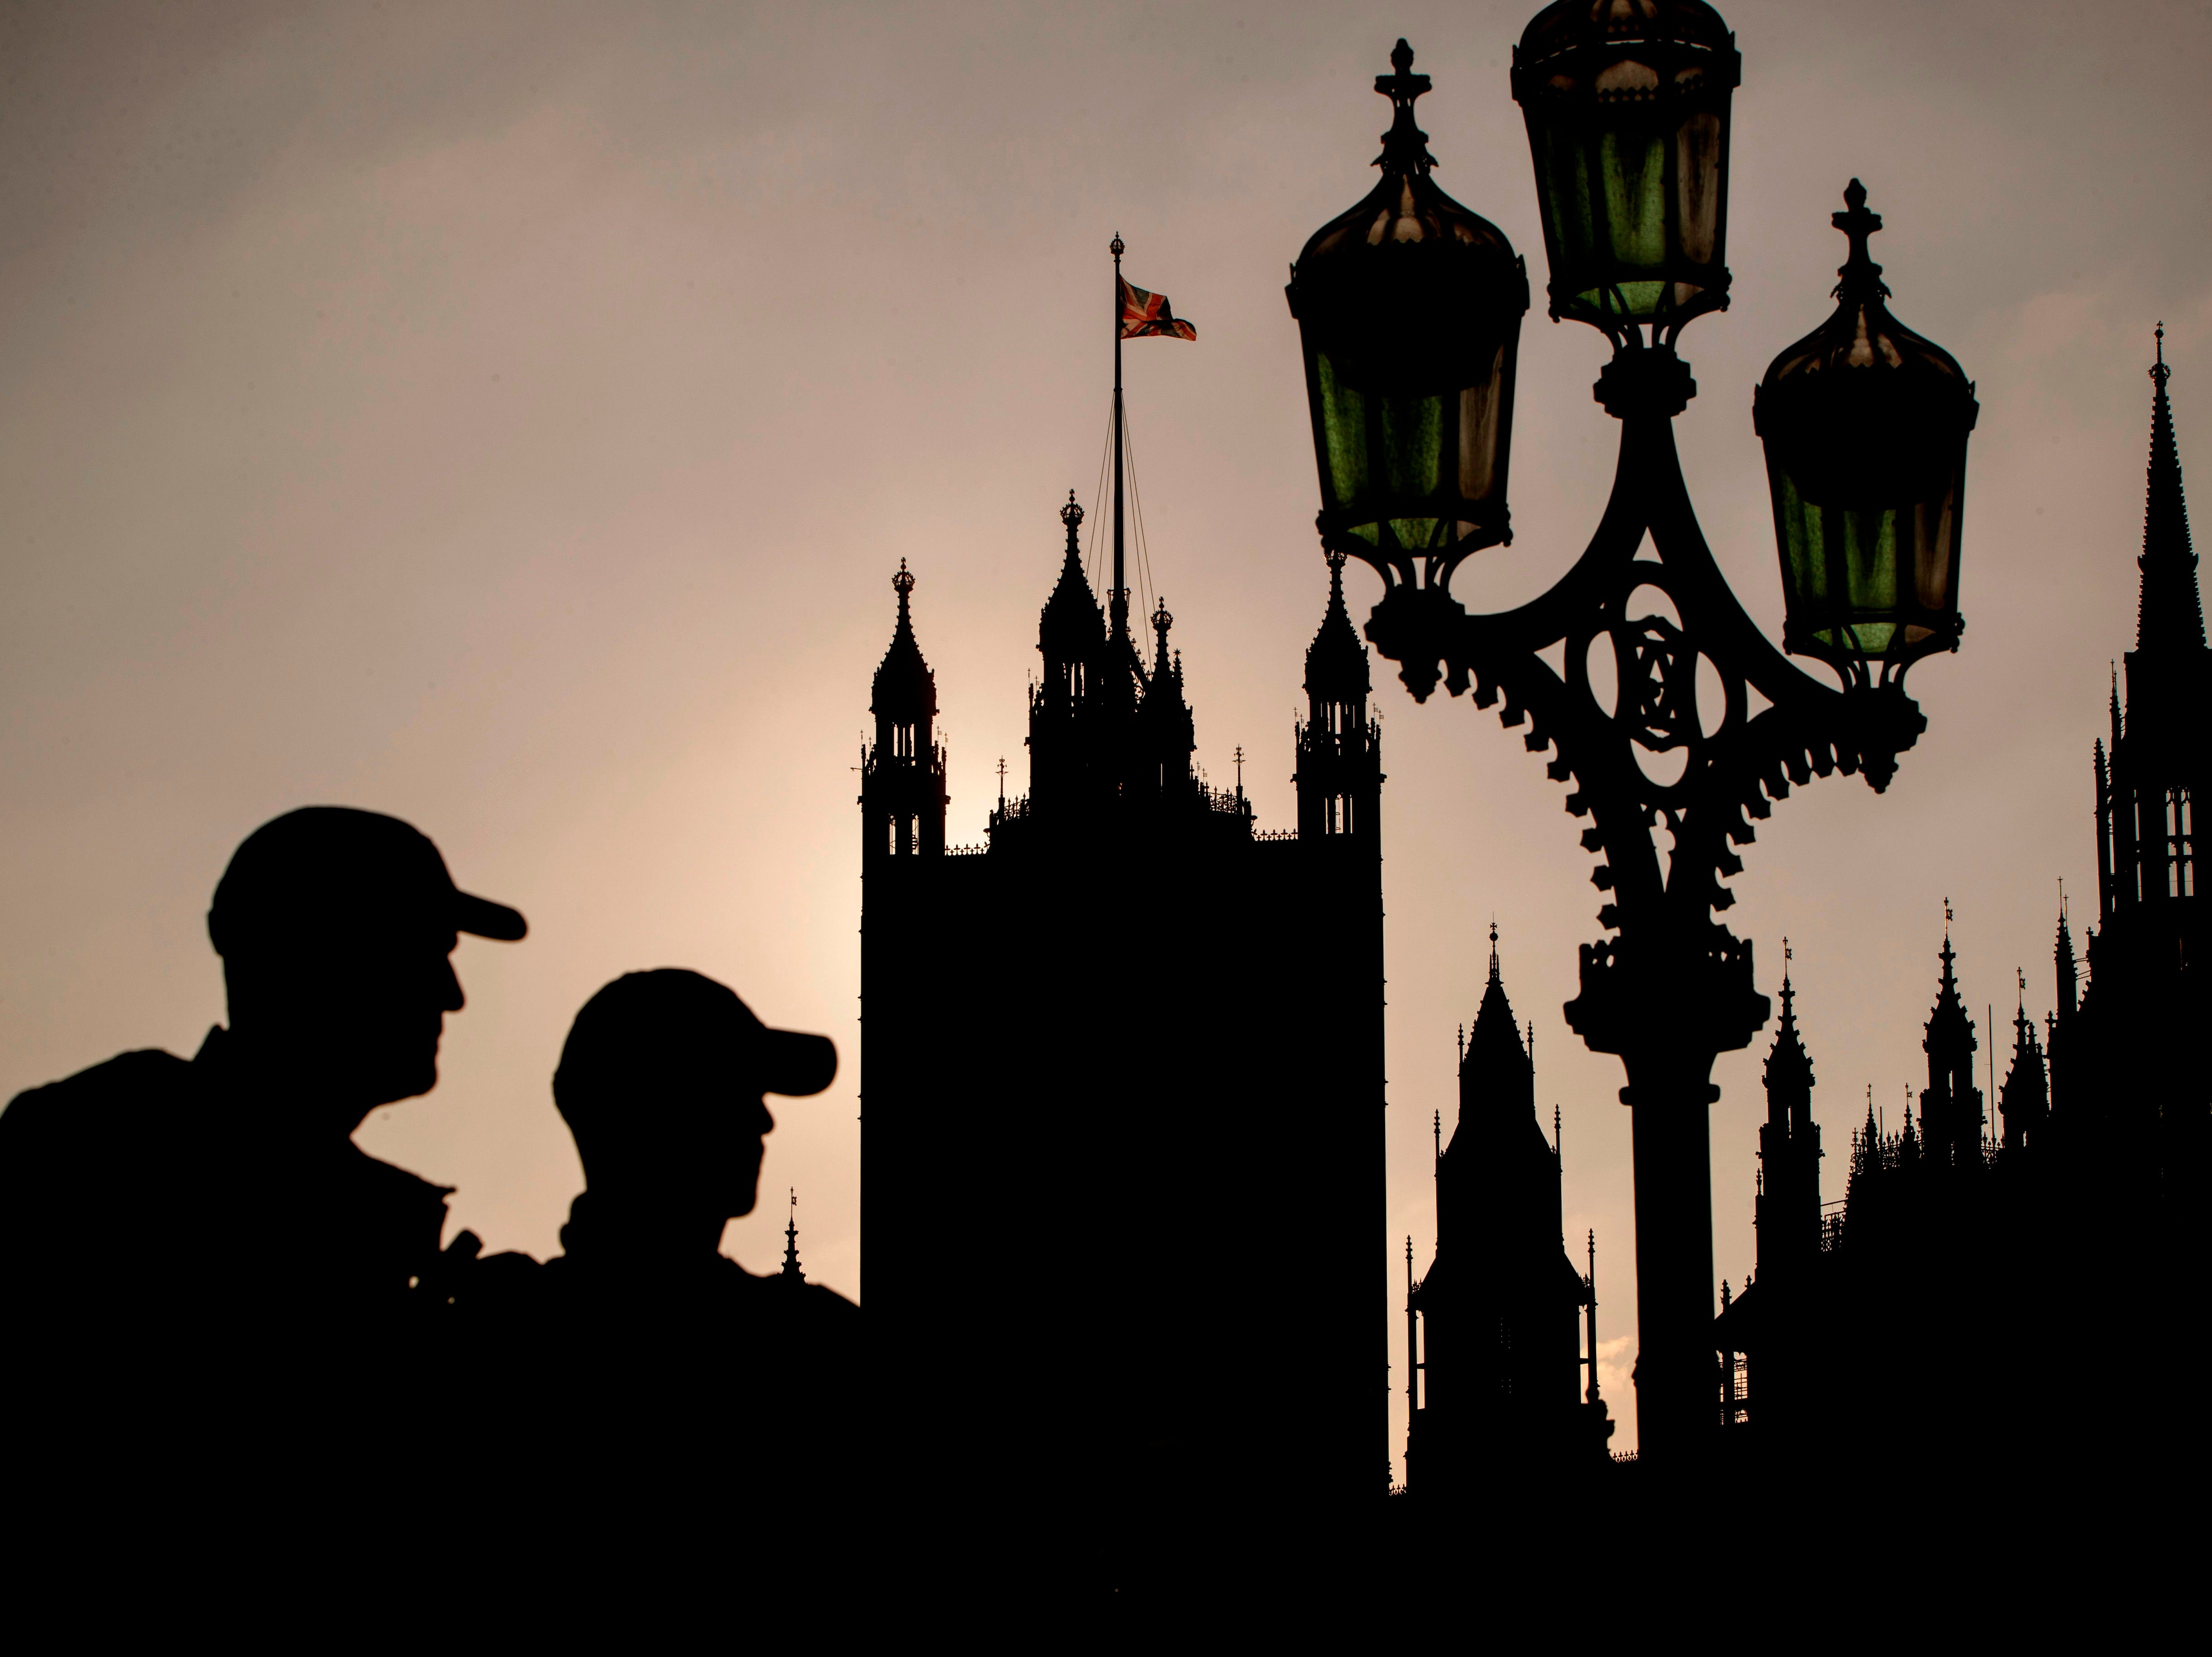 A Union flag flies from atop the Houses of Parliament as pedestrians walk across Westminster Bridge in London on November 17, 2018. - British Prime Minister Theresa May on Saturday told the plotters planning to overthrow her that their alternative Brexit plans would not resolve all their problems with her draft deal. May is fighting to salvage her proposed Brexit agreement -- and her job -- after a tumultuous week in which four ministers resigned, MPs slammed the proposal and members of her own party tried to oust her.